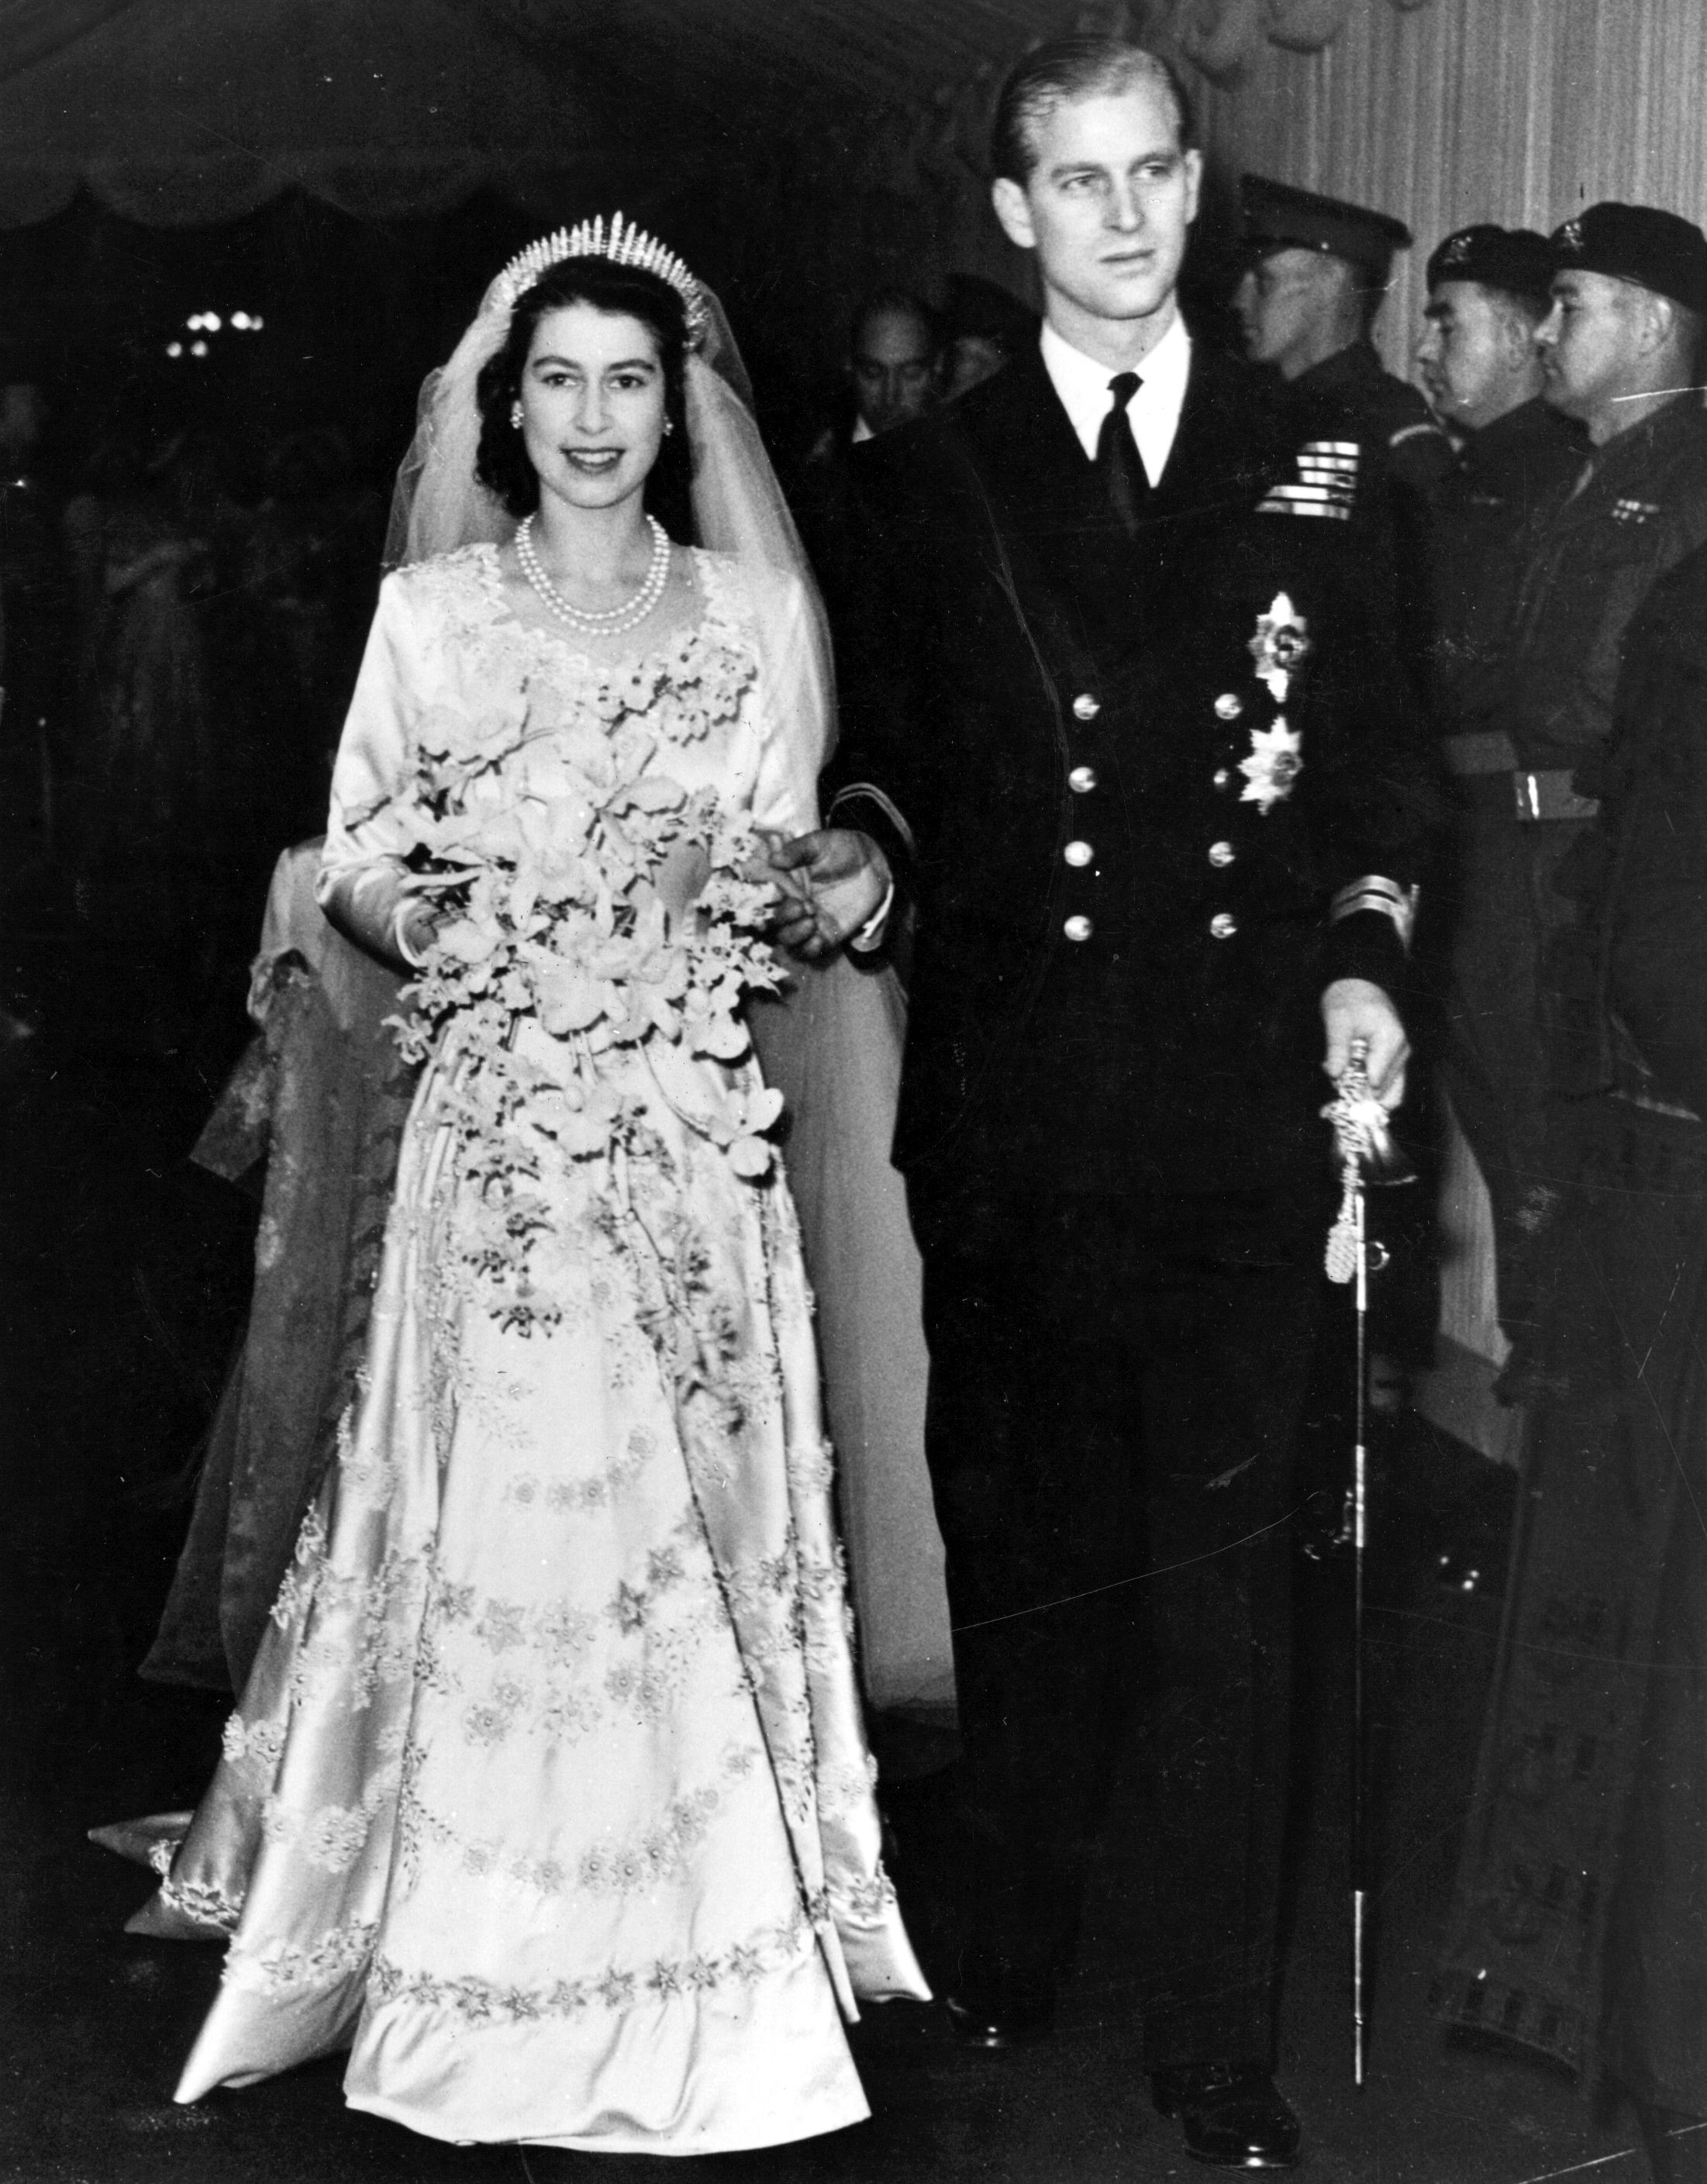 Queen Elizabeth II her husband Prince Philip in 1957, on their wedding day. | Source: Getty Images